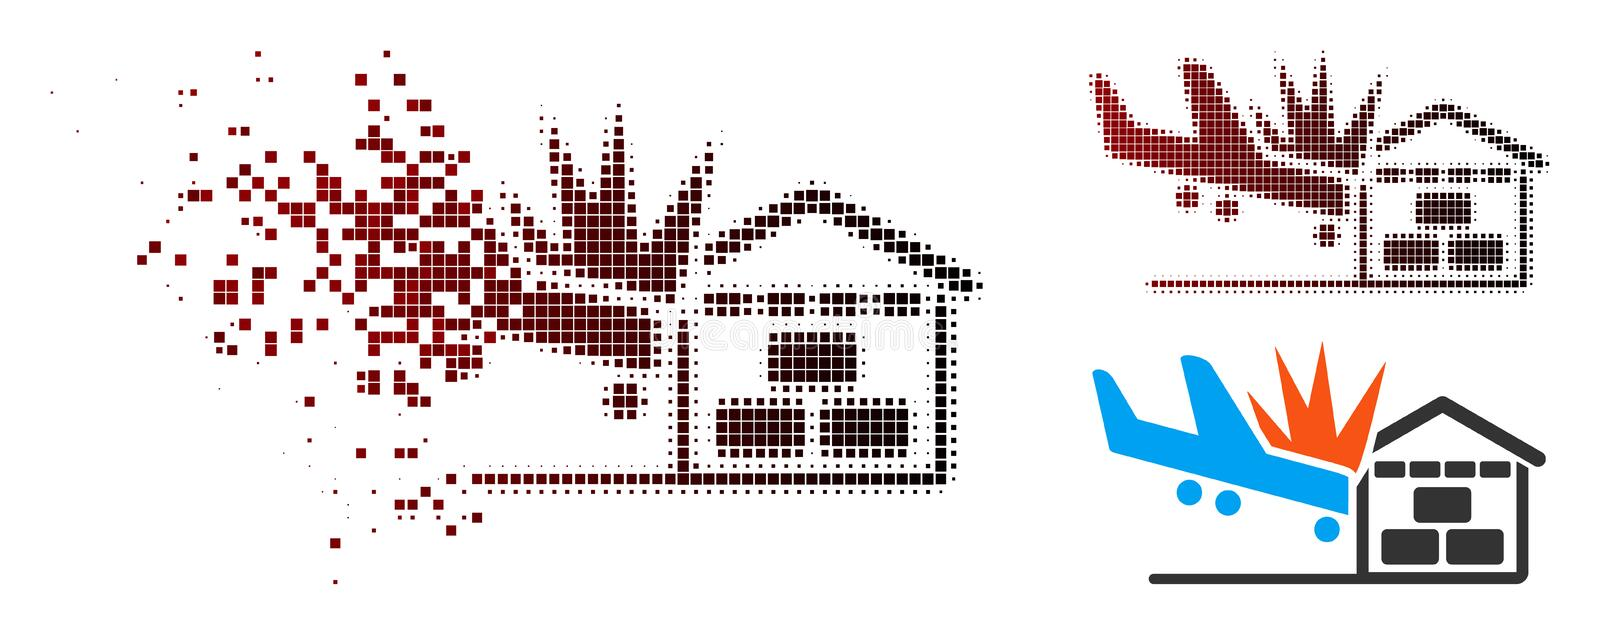 Destructed Pixelated Halftone Airplane Hangar Crash Icon. Airplane hangar crash icon in dispersed, pixelated halftone and undamaged solid versions. Cells are royalty free illustration